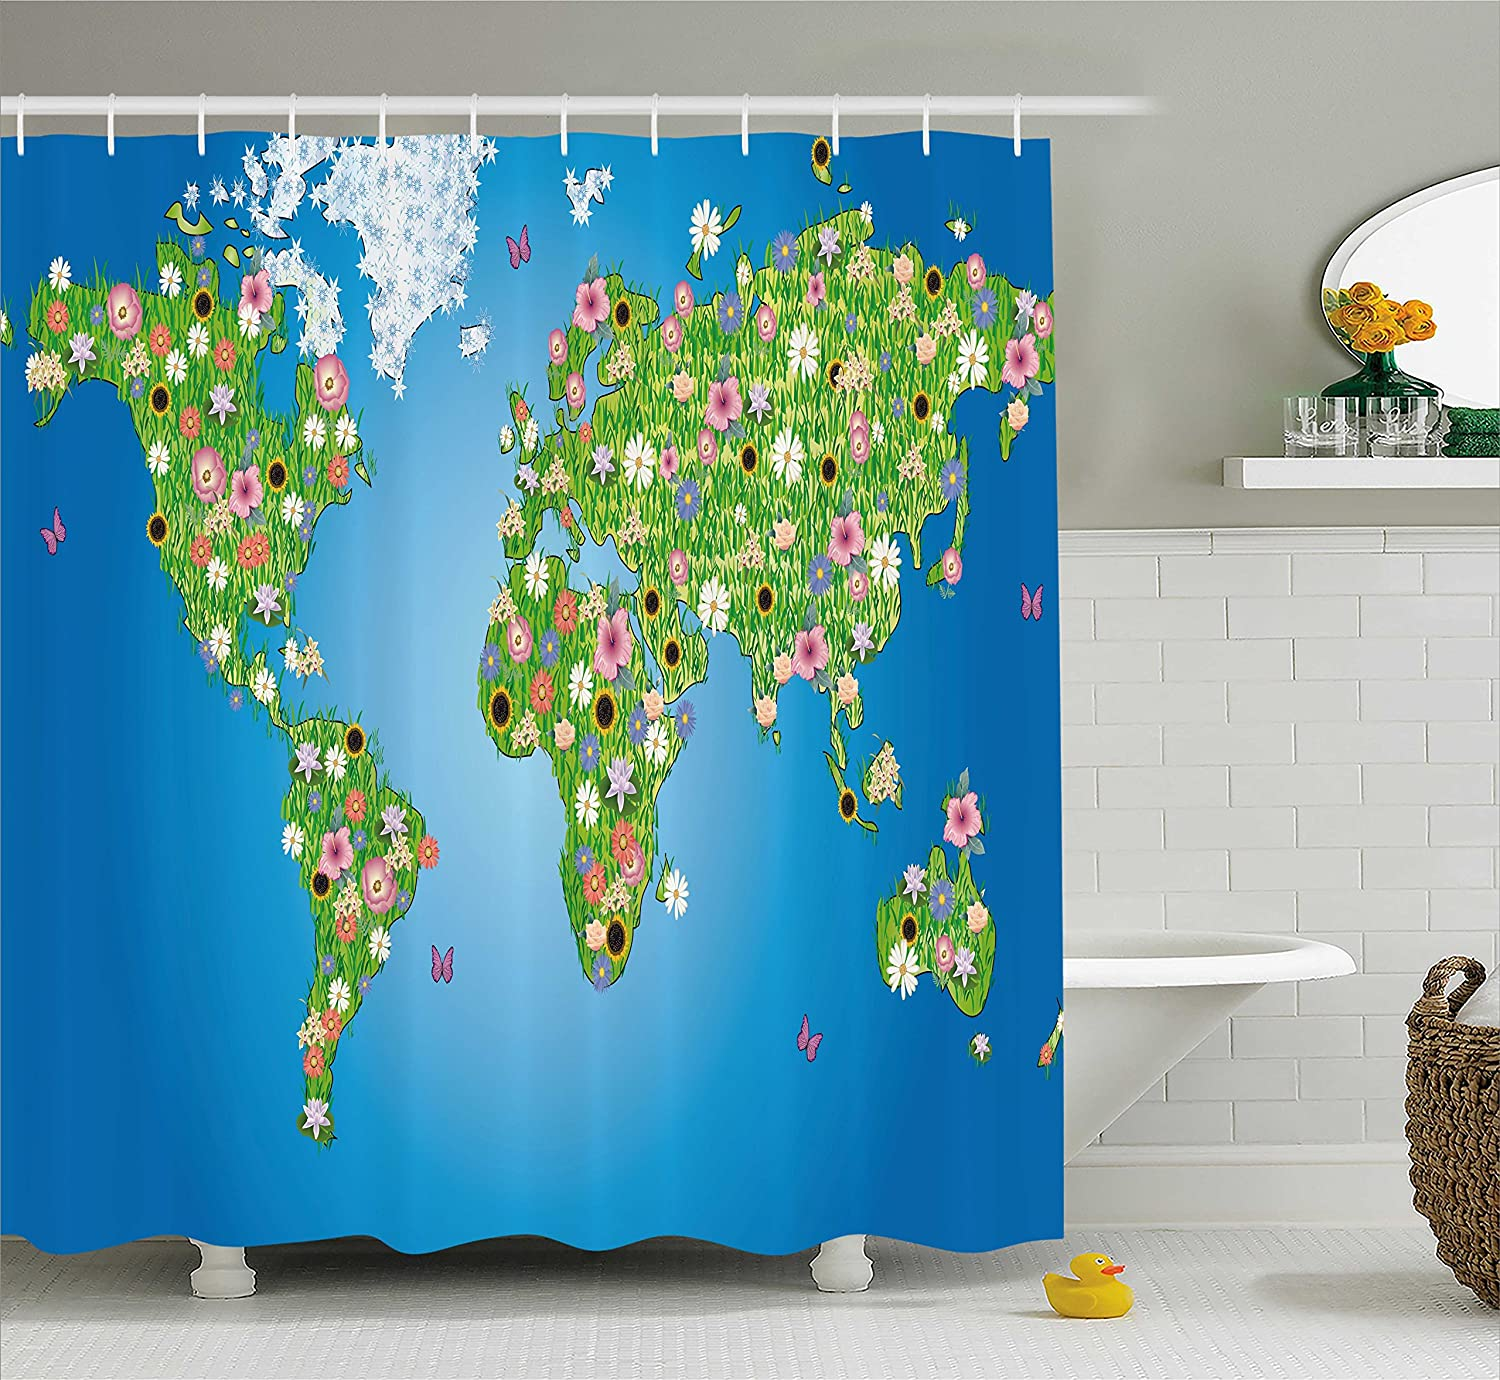 Amazon.com: Ambesonne Garden Shower Curtain, Daisy Lily Daffodil ...